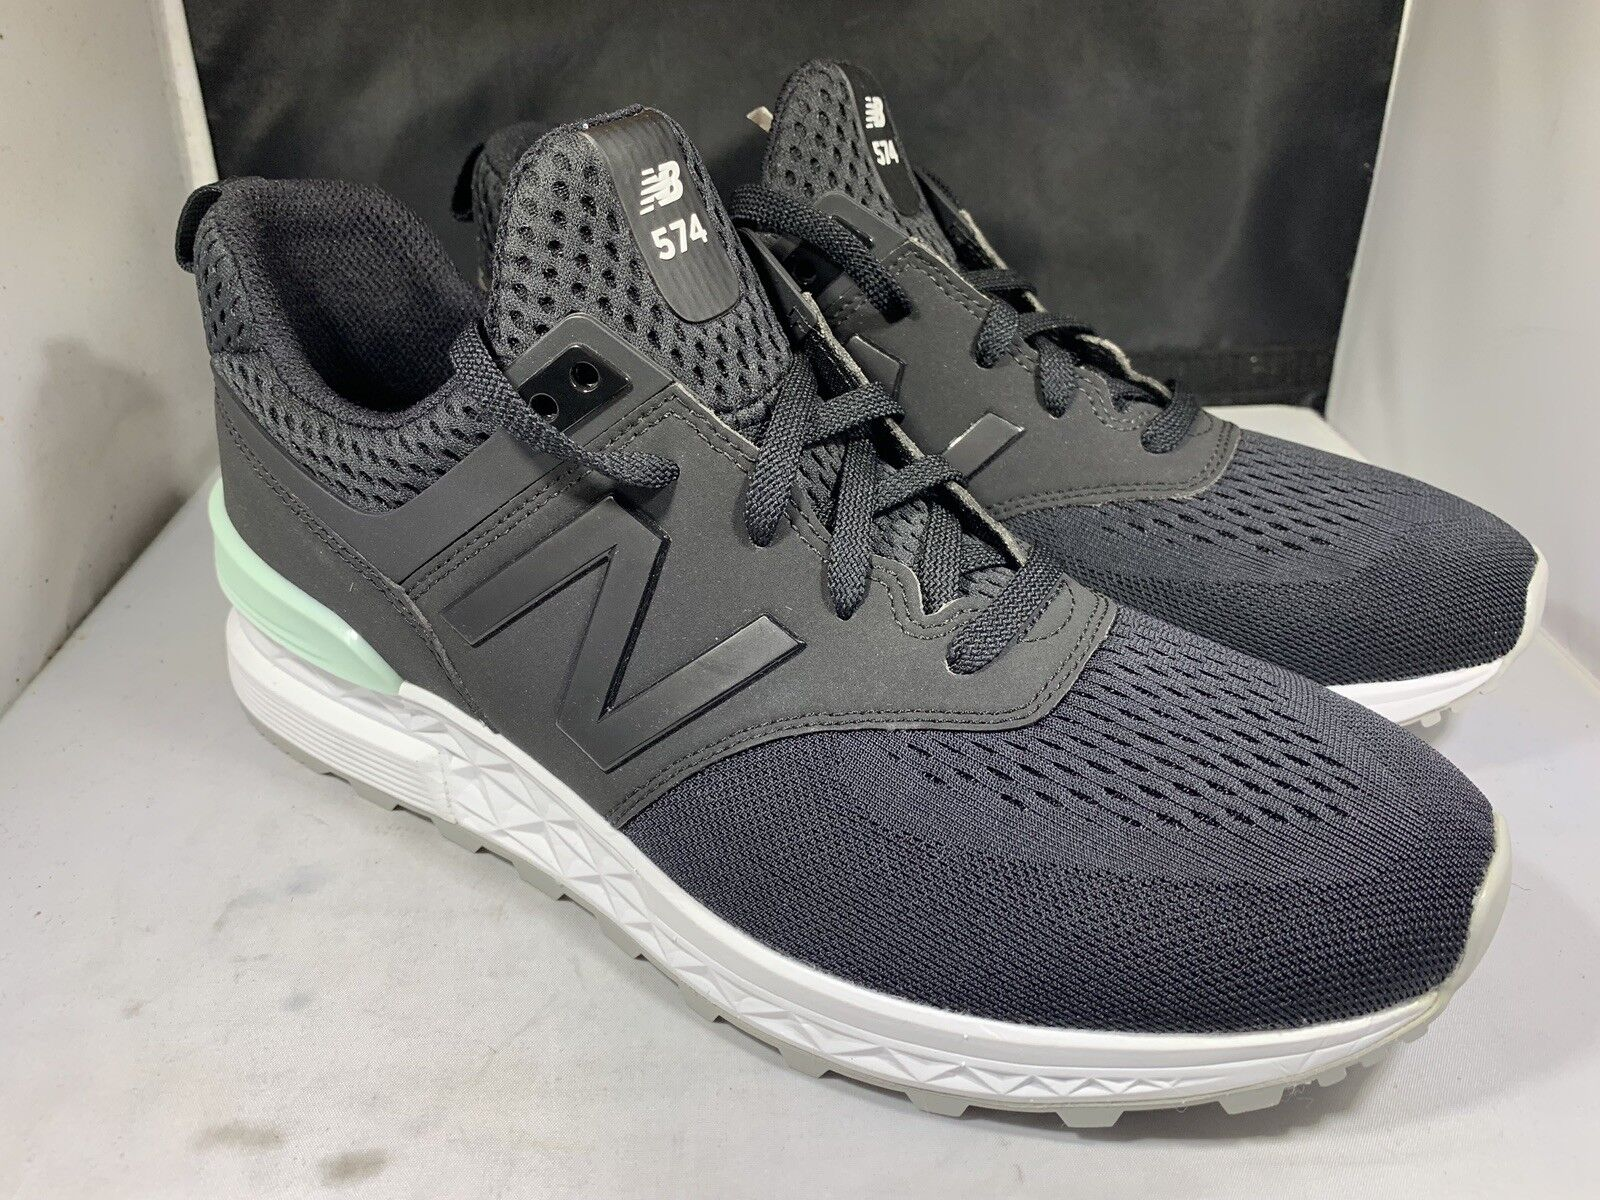 New Balance Men's MS574TMB black and white tennis shoes size 13d (nb48)